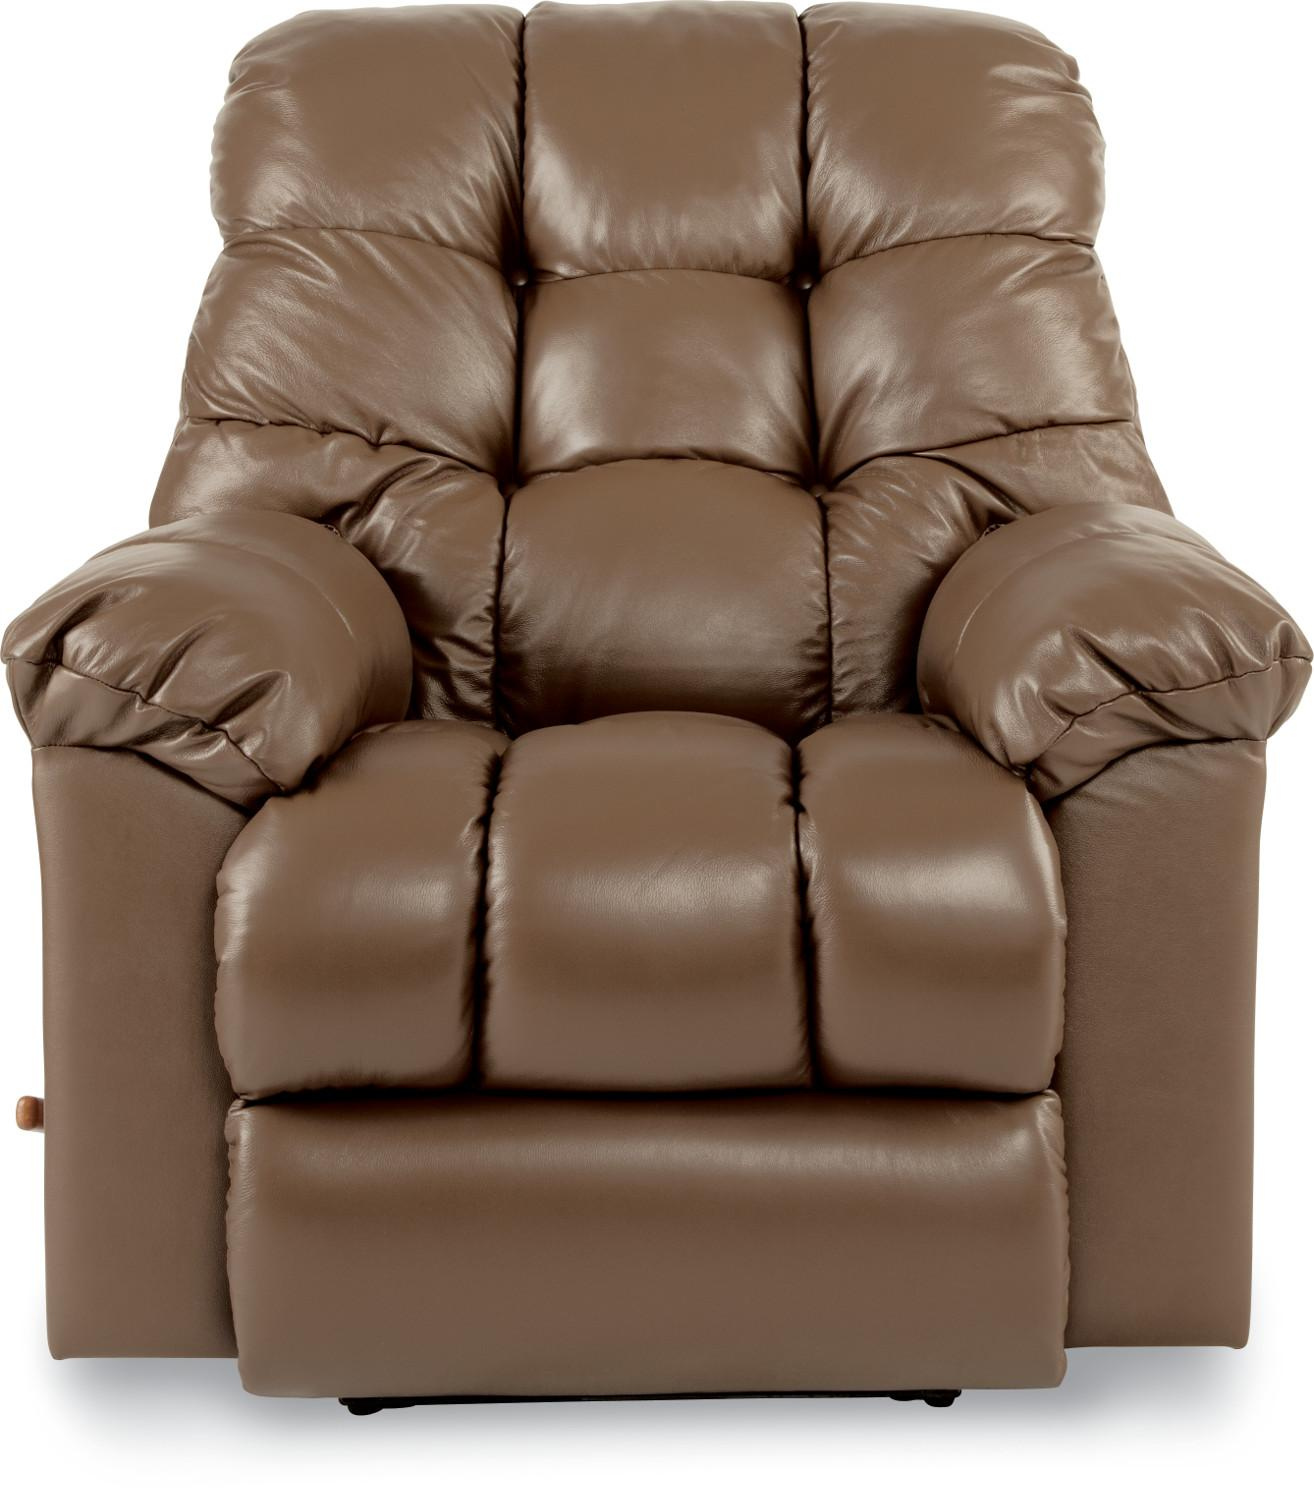 Gibson Rocking Recliner by La-Z-Boy at Jordan's Home Furnishings